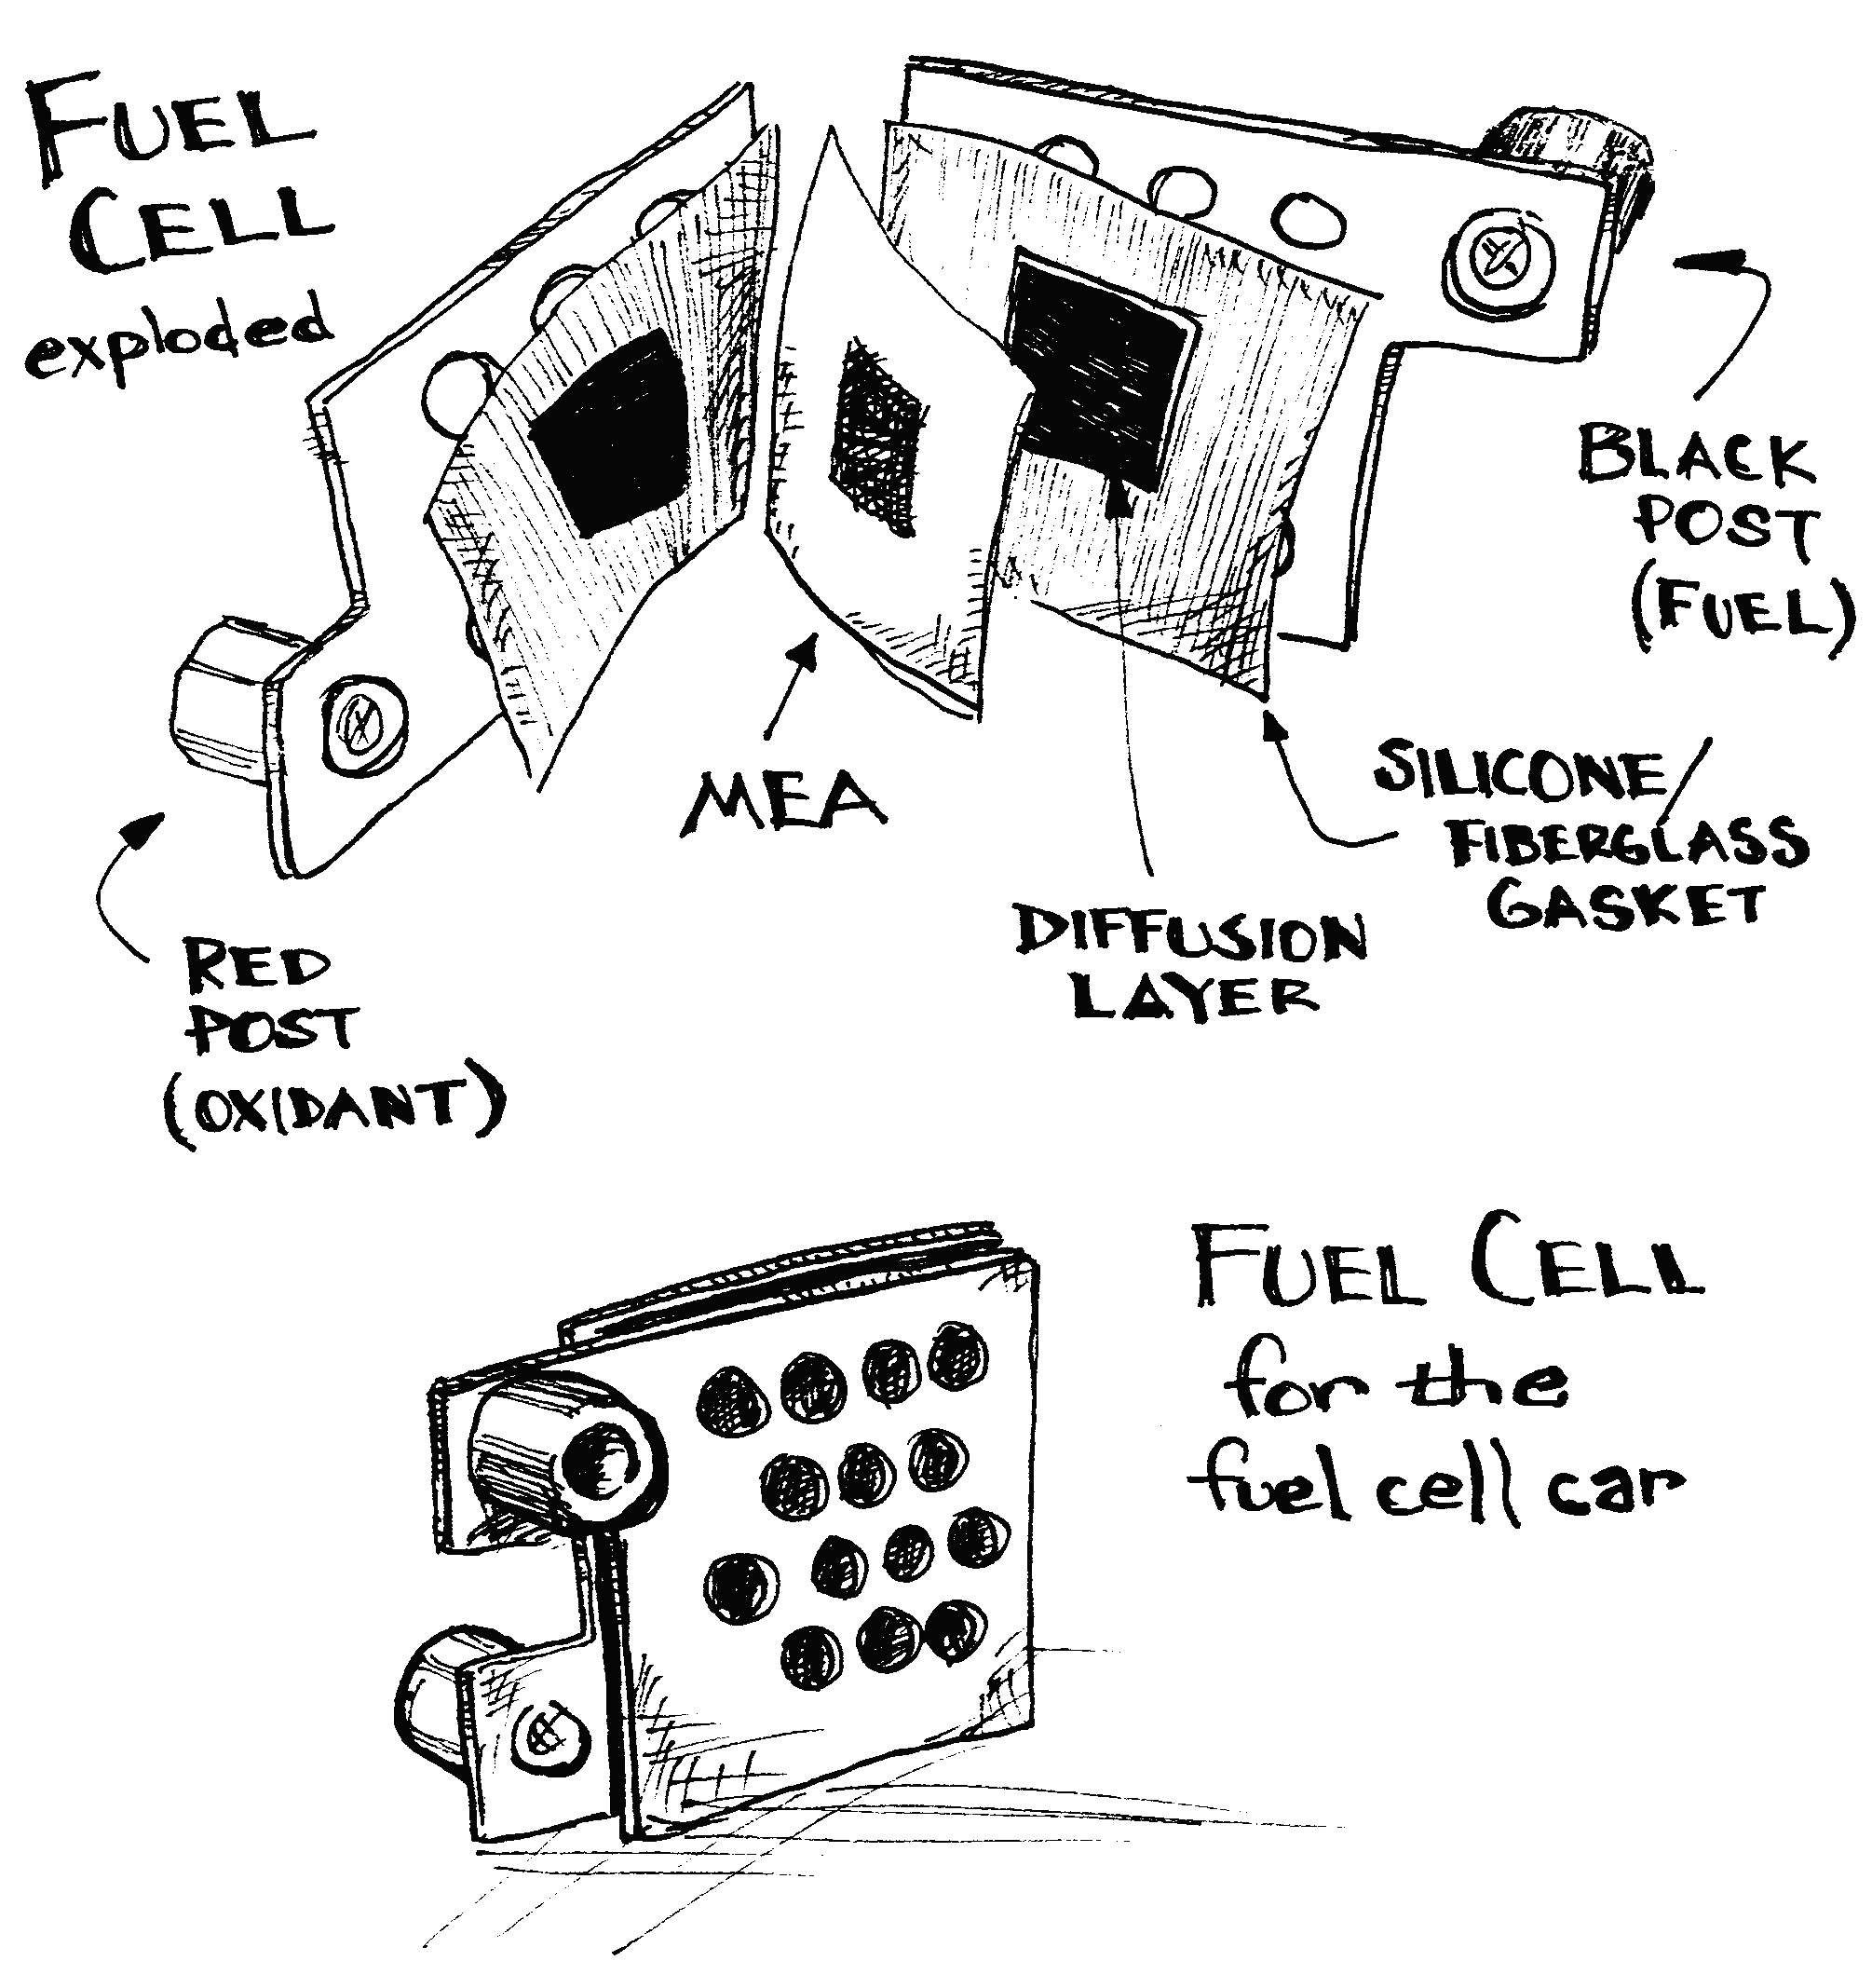 fuel cell drawing edit